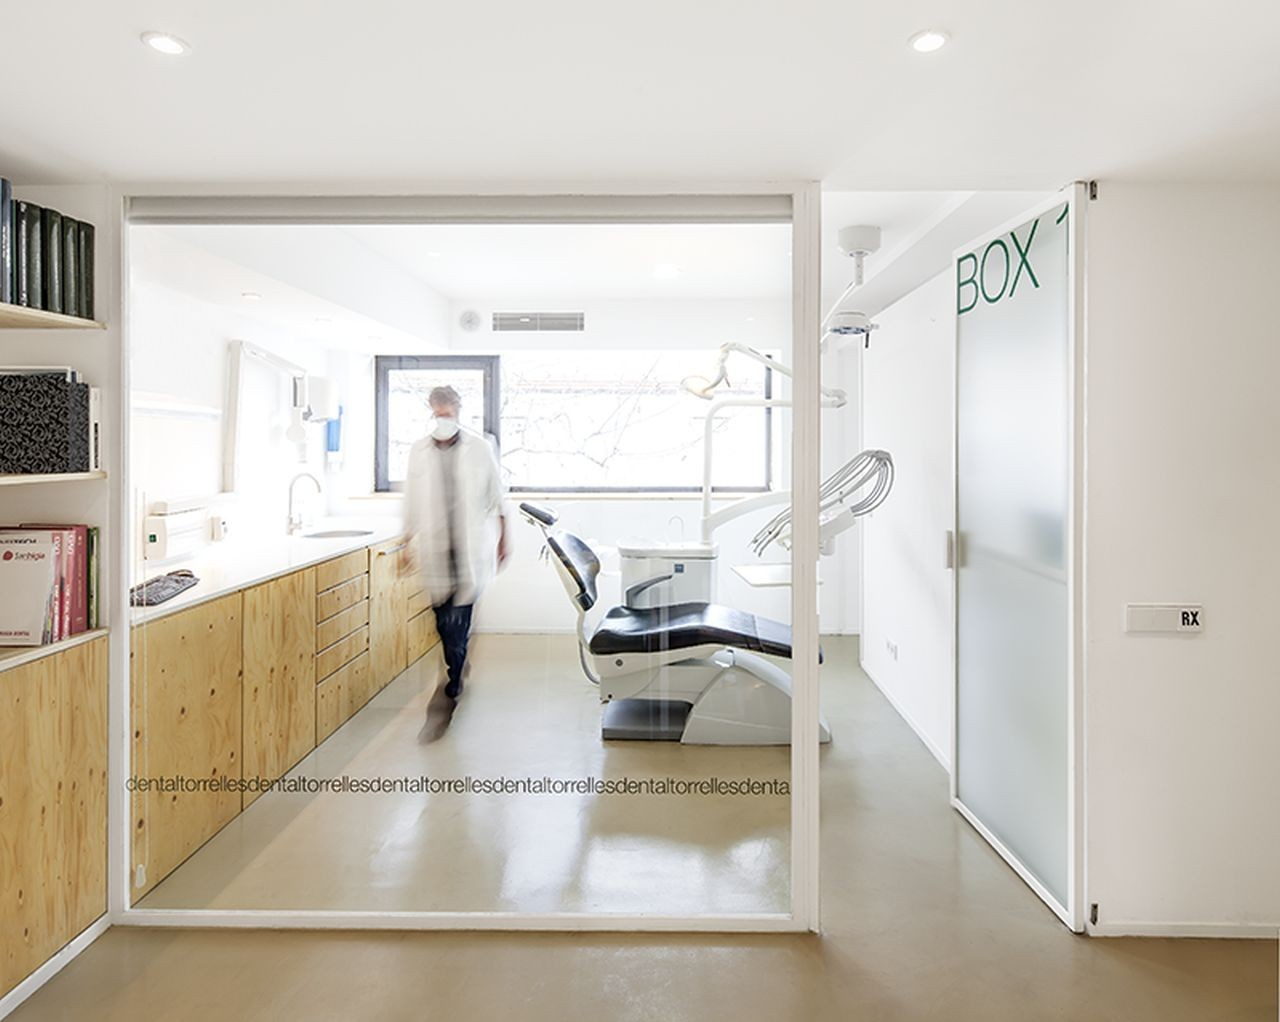 Dental clinic in torrelles sergi pons archdaily for Dental clinic interior designs